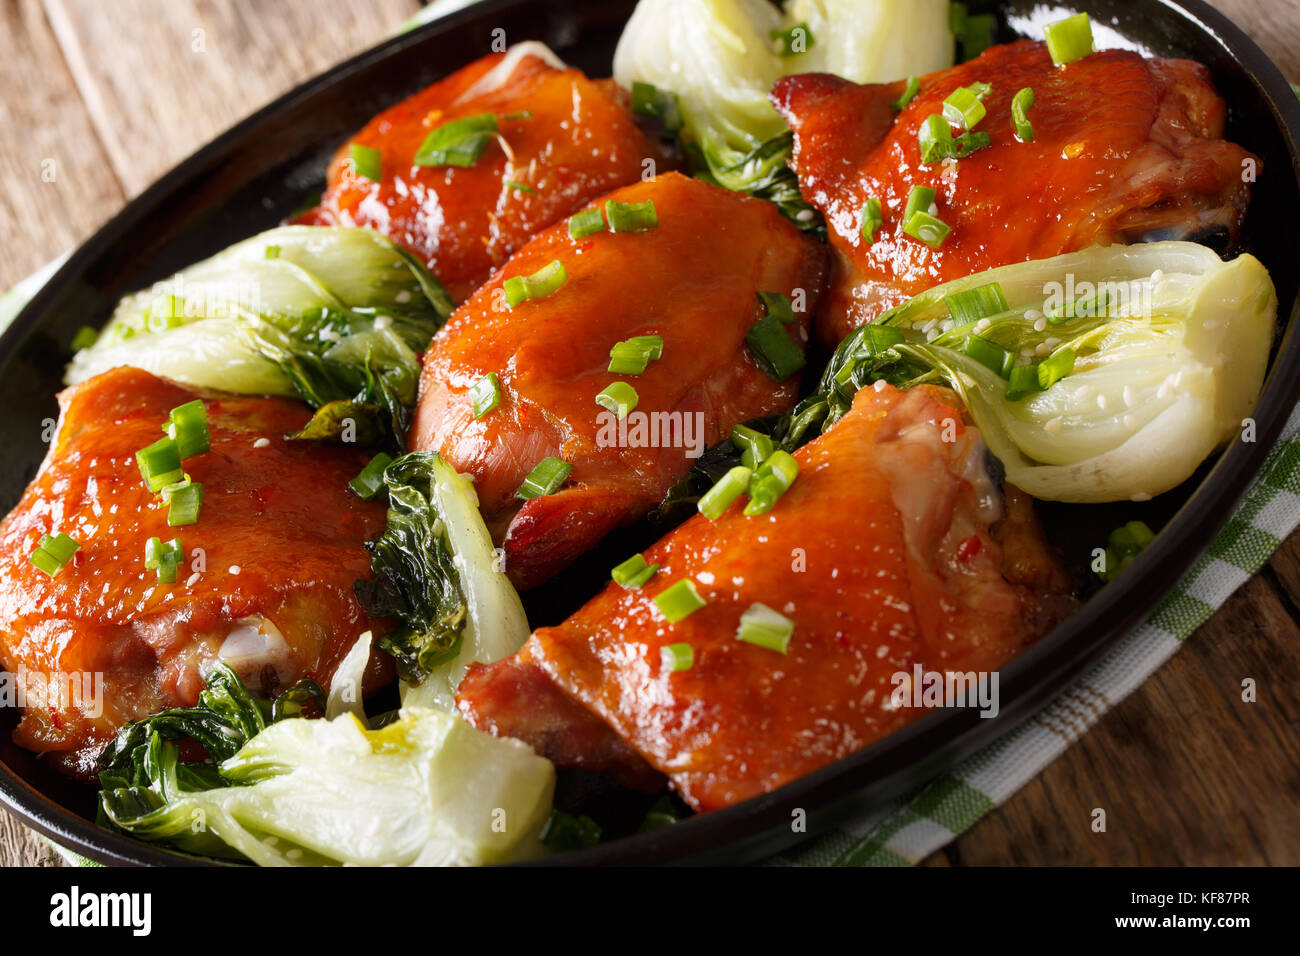 Fried chicken thighs with pak choy, ginger, garlic and green onions closeup on a plate. horizontal - Stock Image